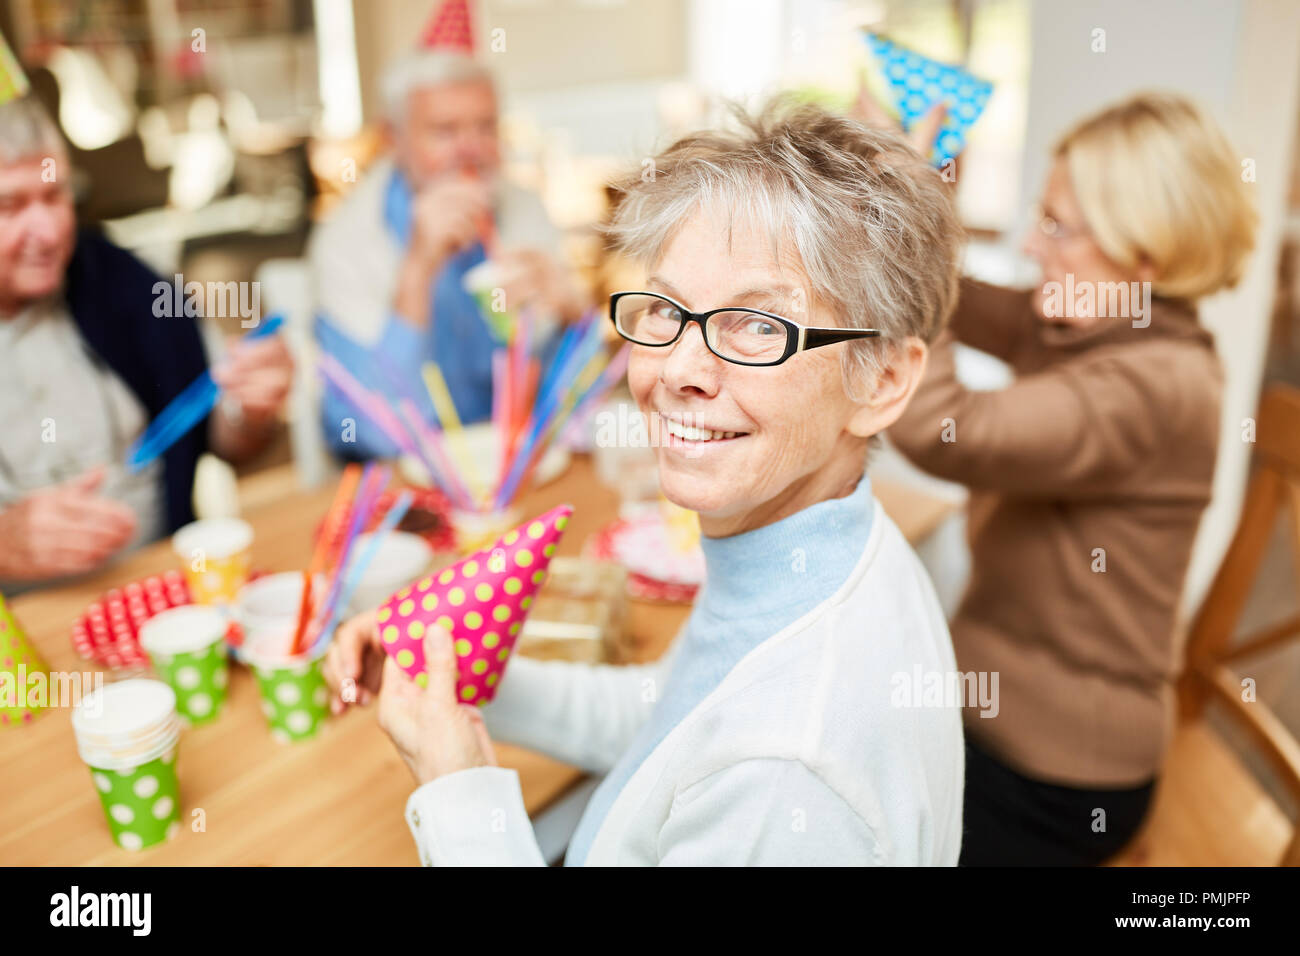 Senior woman in retirement home celebrates carnival or birthday together with friends - Stock Image